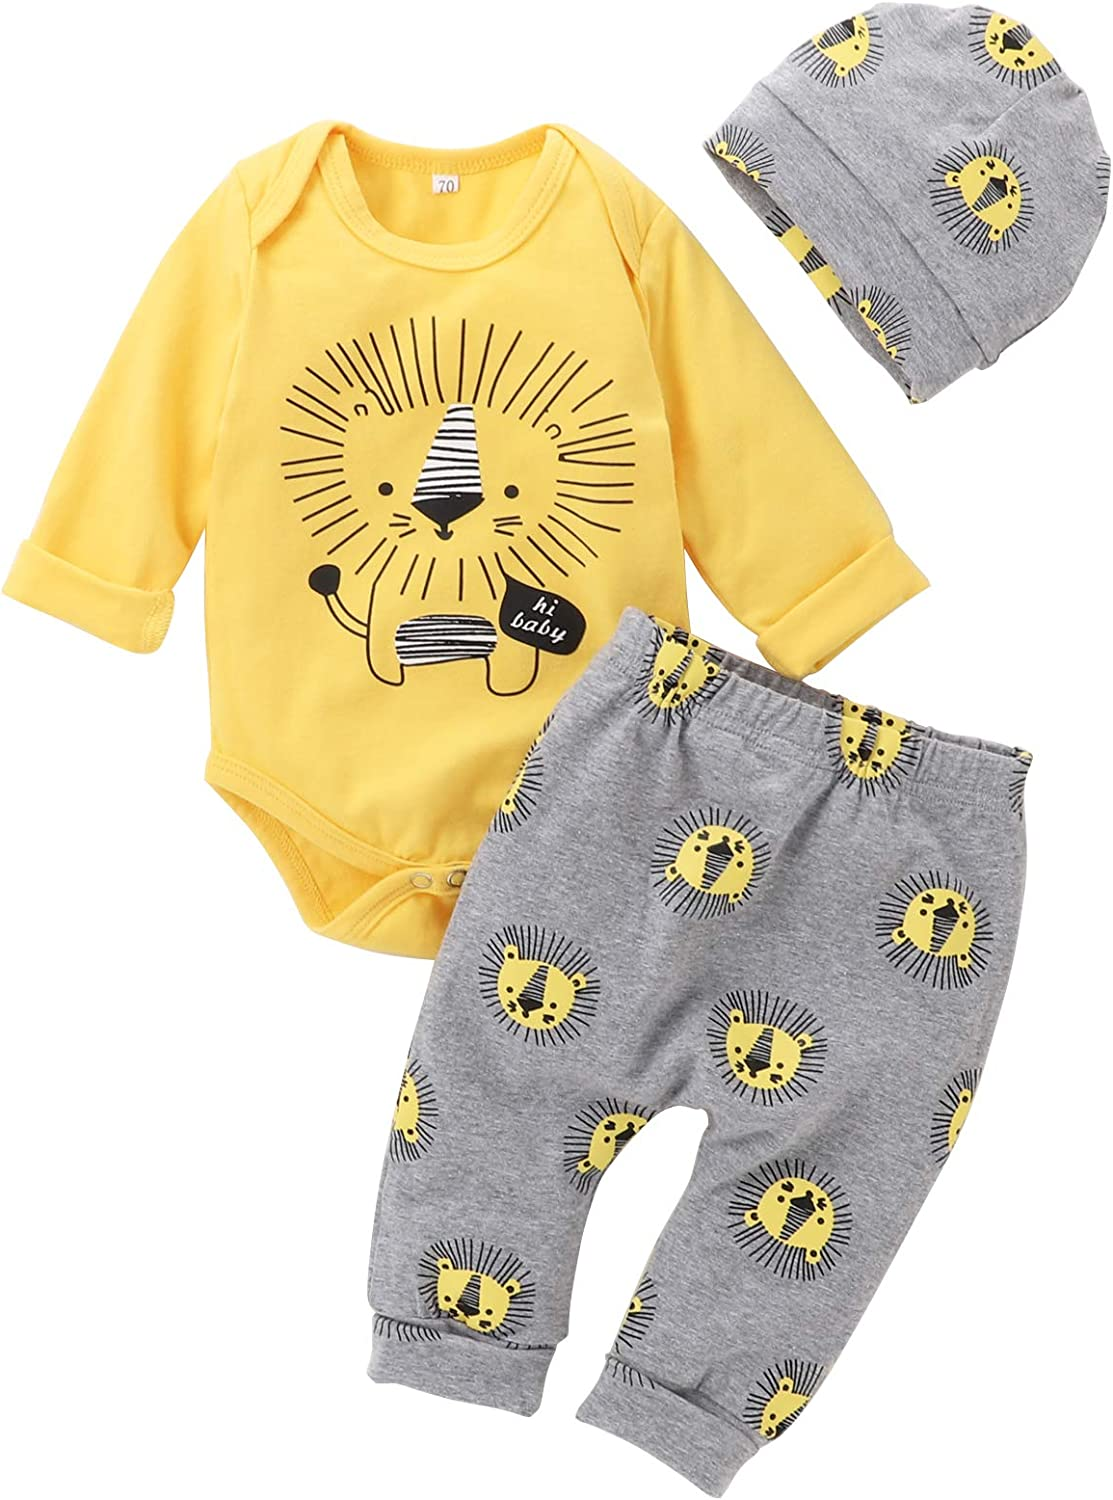 Newborn Baby Boy Clothes Little Lion Print Romper+Pants+Hat Newborn Boy Outfits Set(0-12 Months)